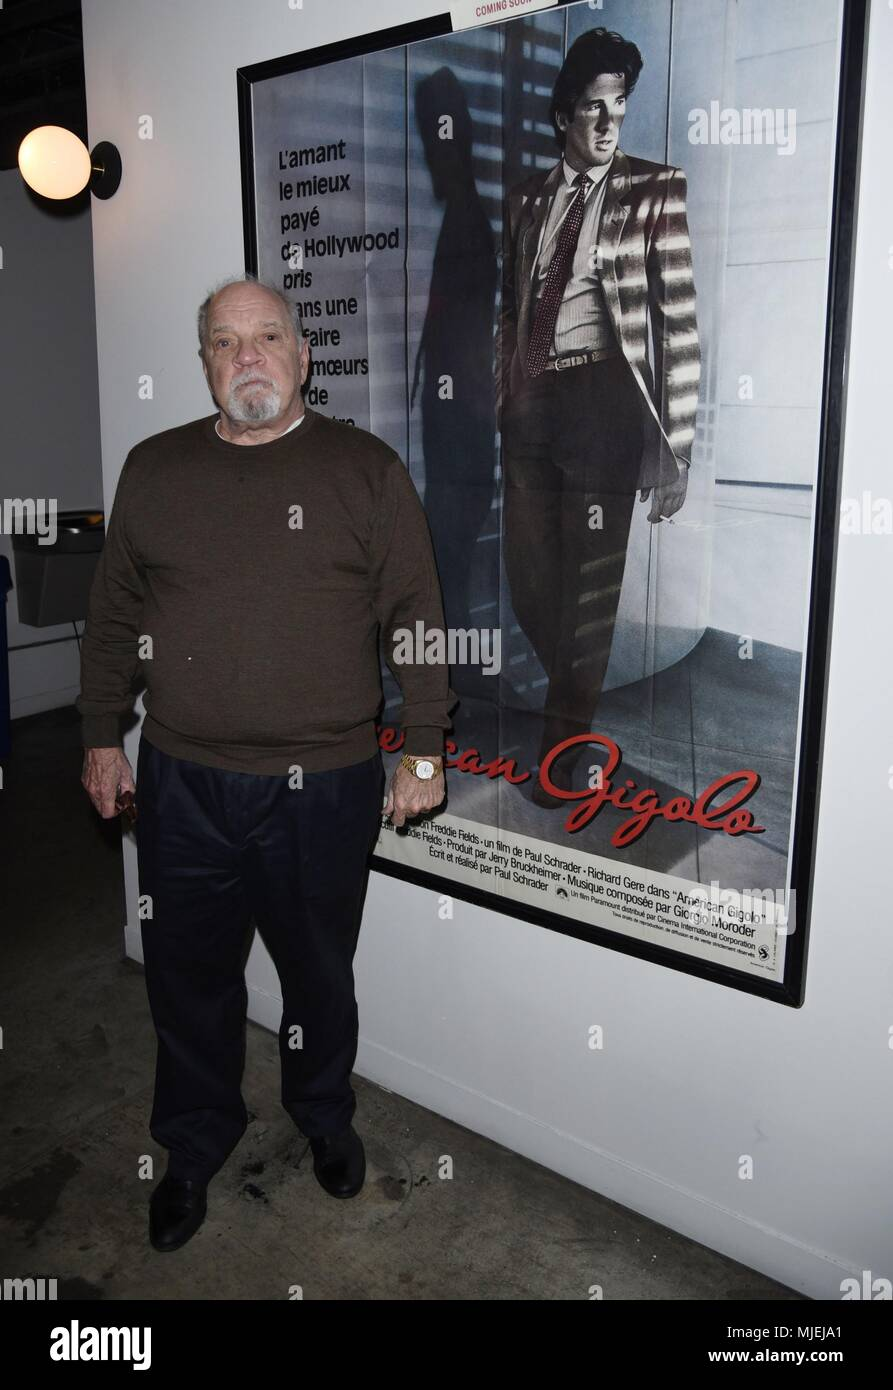 New York, NY, USA. 4th May, 2018. Paul Schrader, appears at The Metrograph for a Weekend Retrospective of Film Introductions and Audience Q&A's out and about for Celebrity Candids - FRI, New York, NY May 4, 2018. Credit: Derek Storm/Everett Collection/Alamy Live News - Stock Image